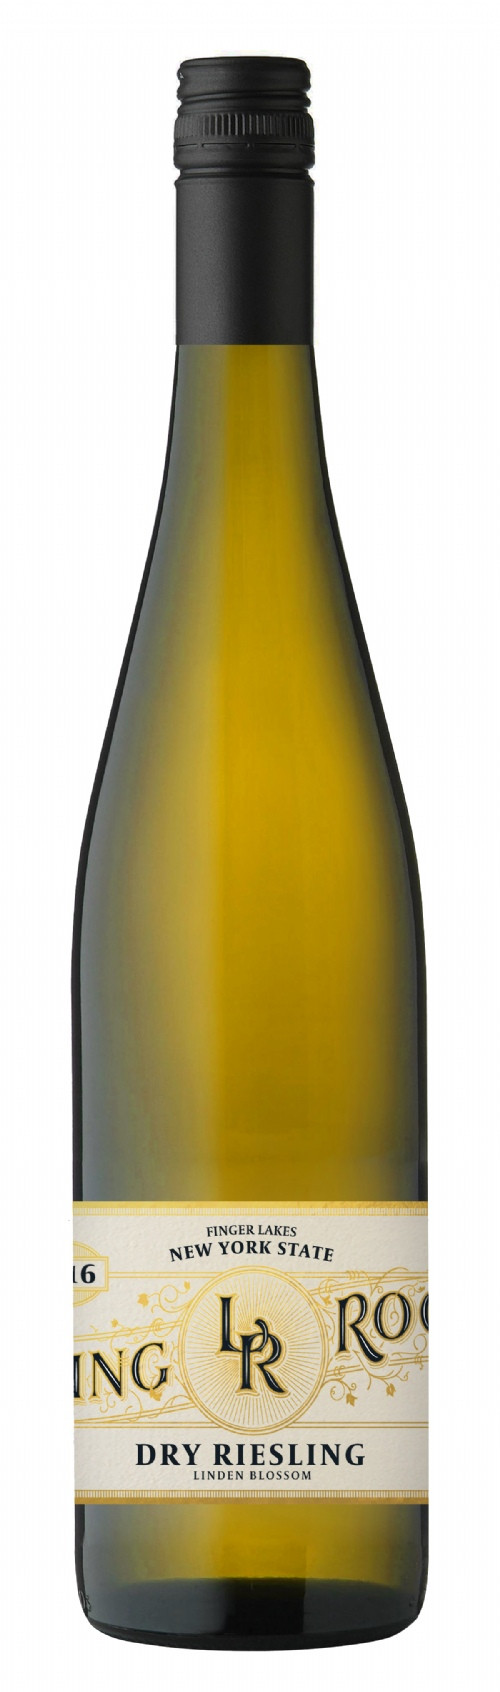 2017 Living Roots Dry Riesling 750ml